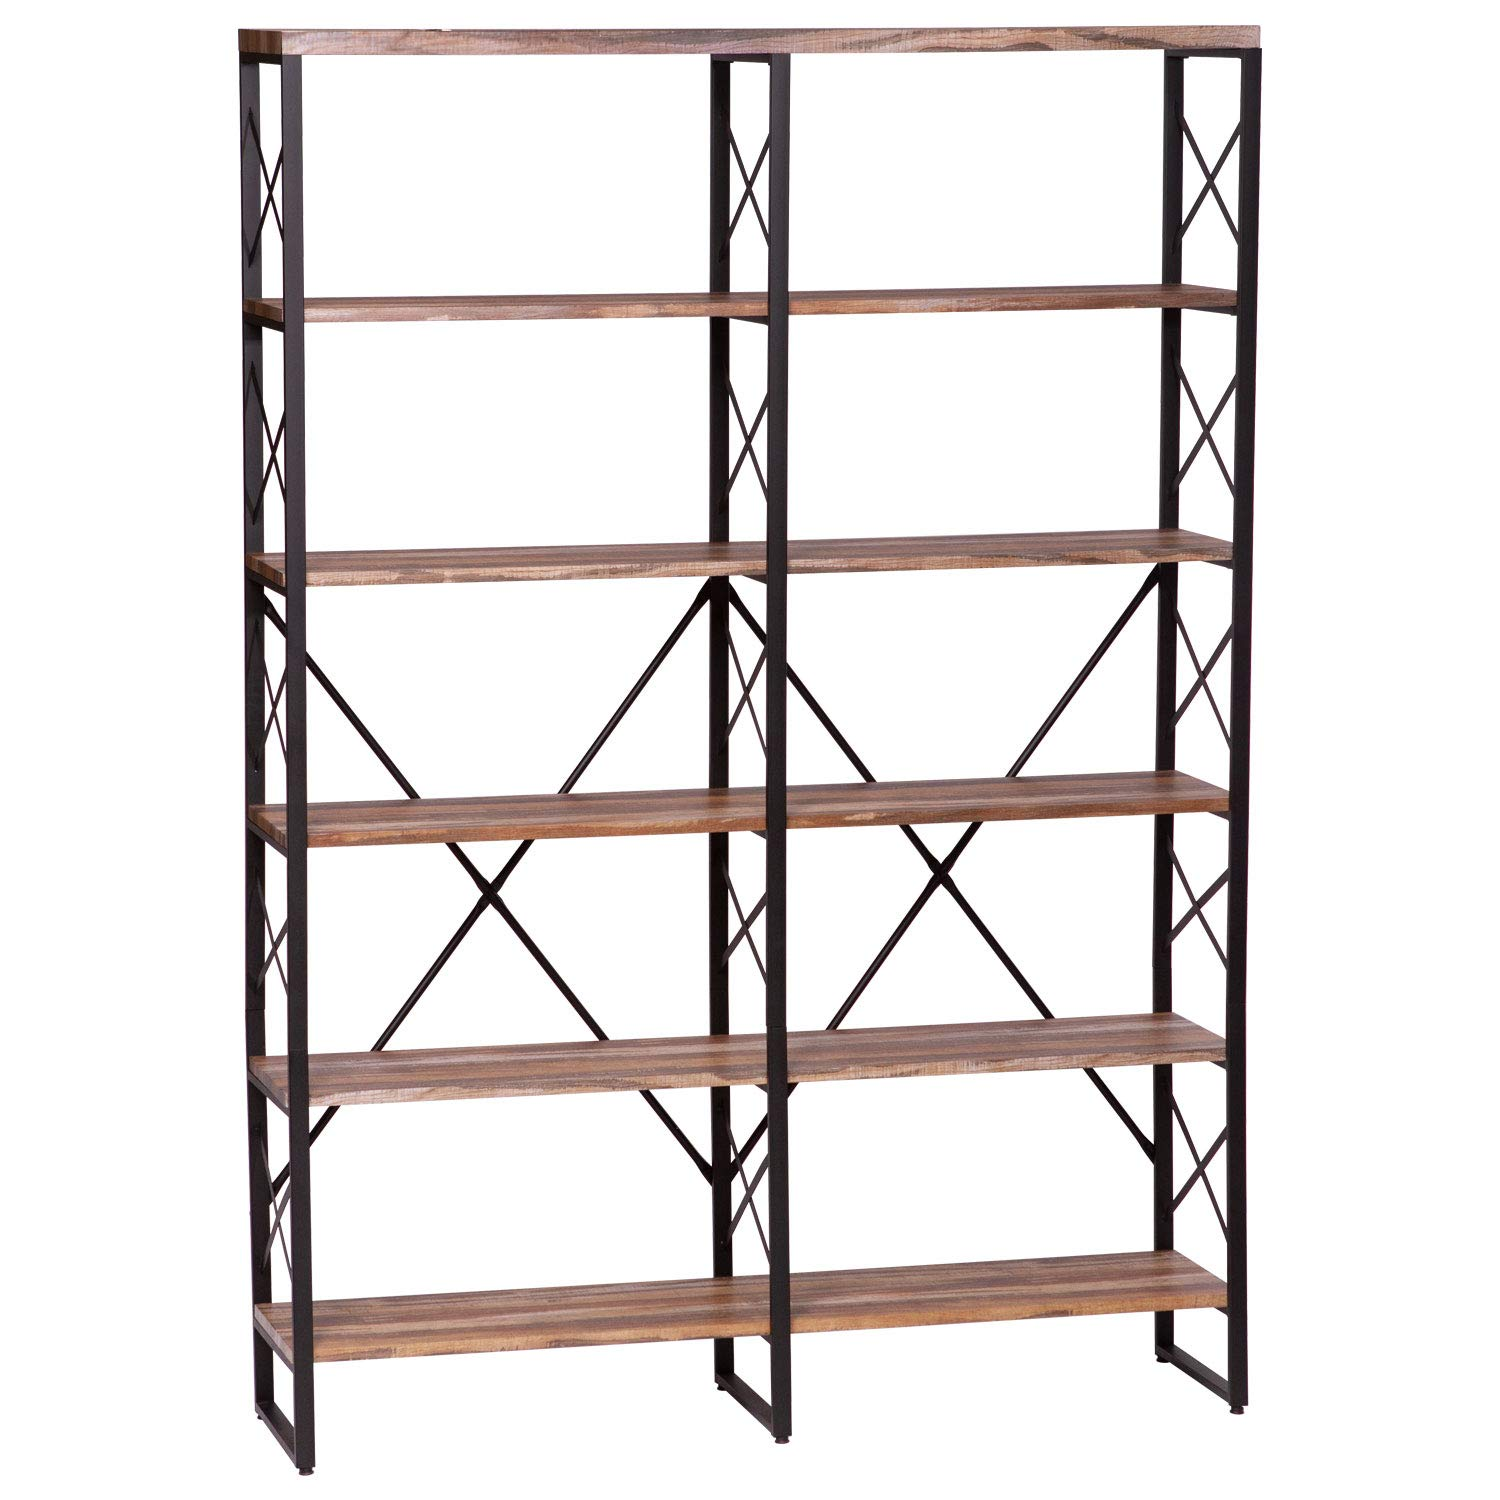 """Ironck Bookshelf, Double Wide 6-tier 70"""" H Open Bookcase Vintage Industrial  Style Shelves Wood And Metal Bookshelves, Home, Office Furniture"""